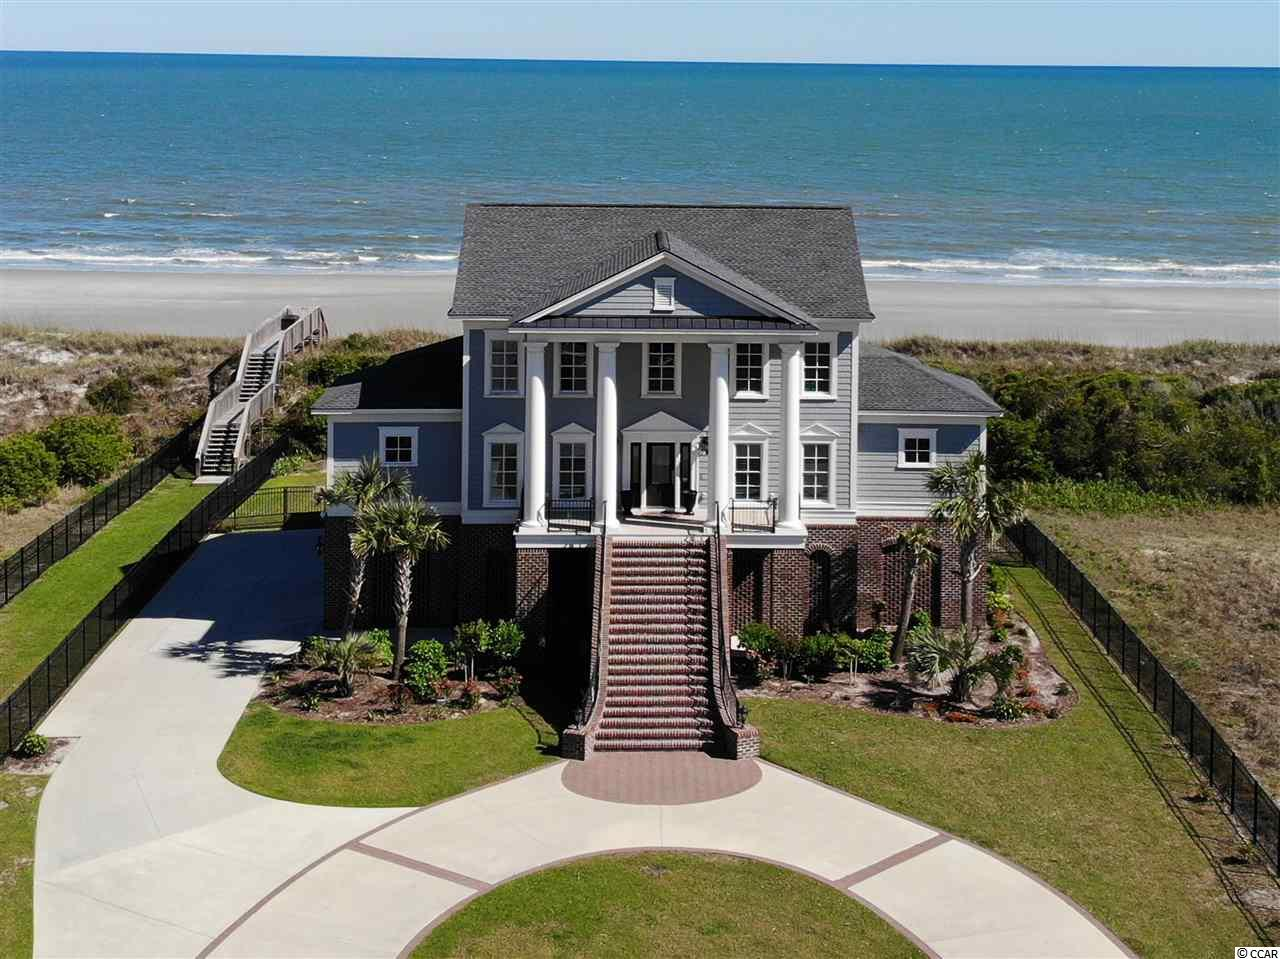 8806 N Ocean Blvd., Myrtle Beach, South Carolina